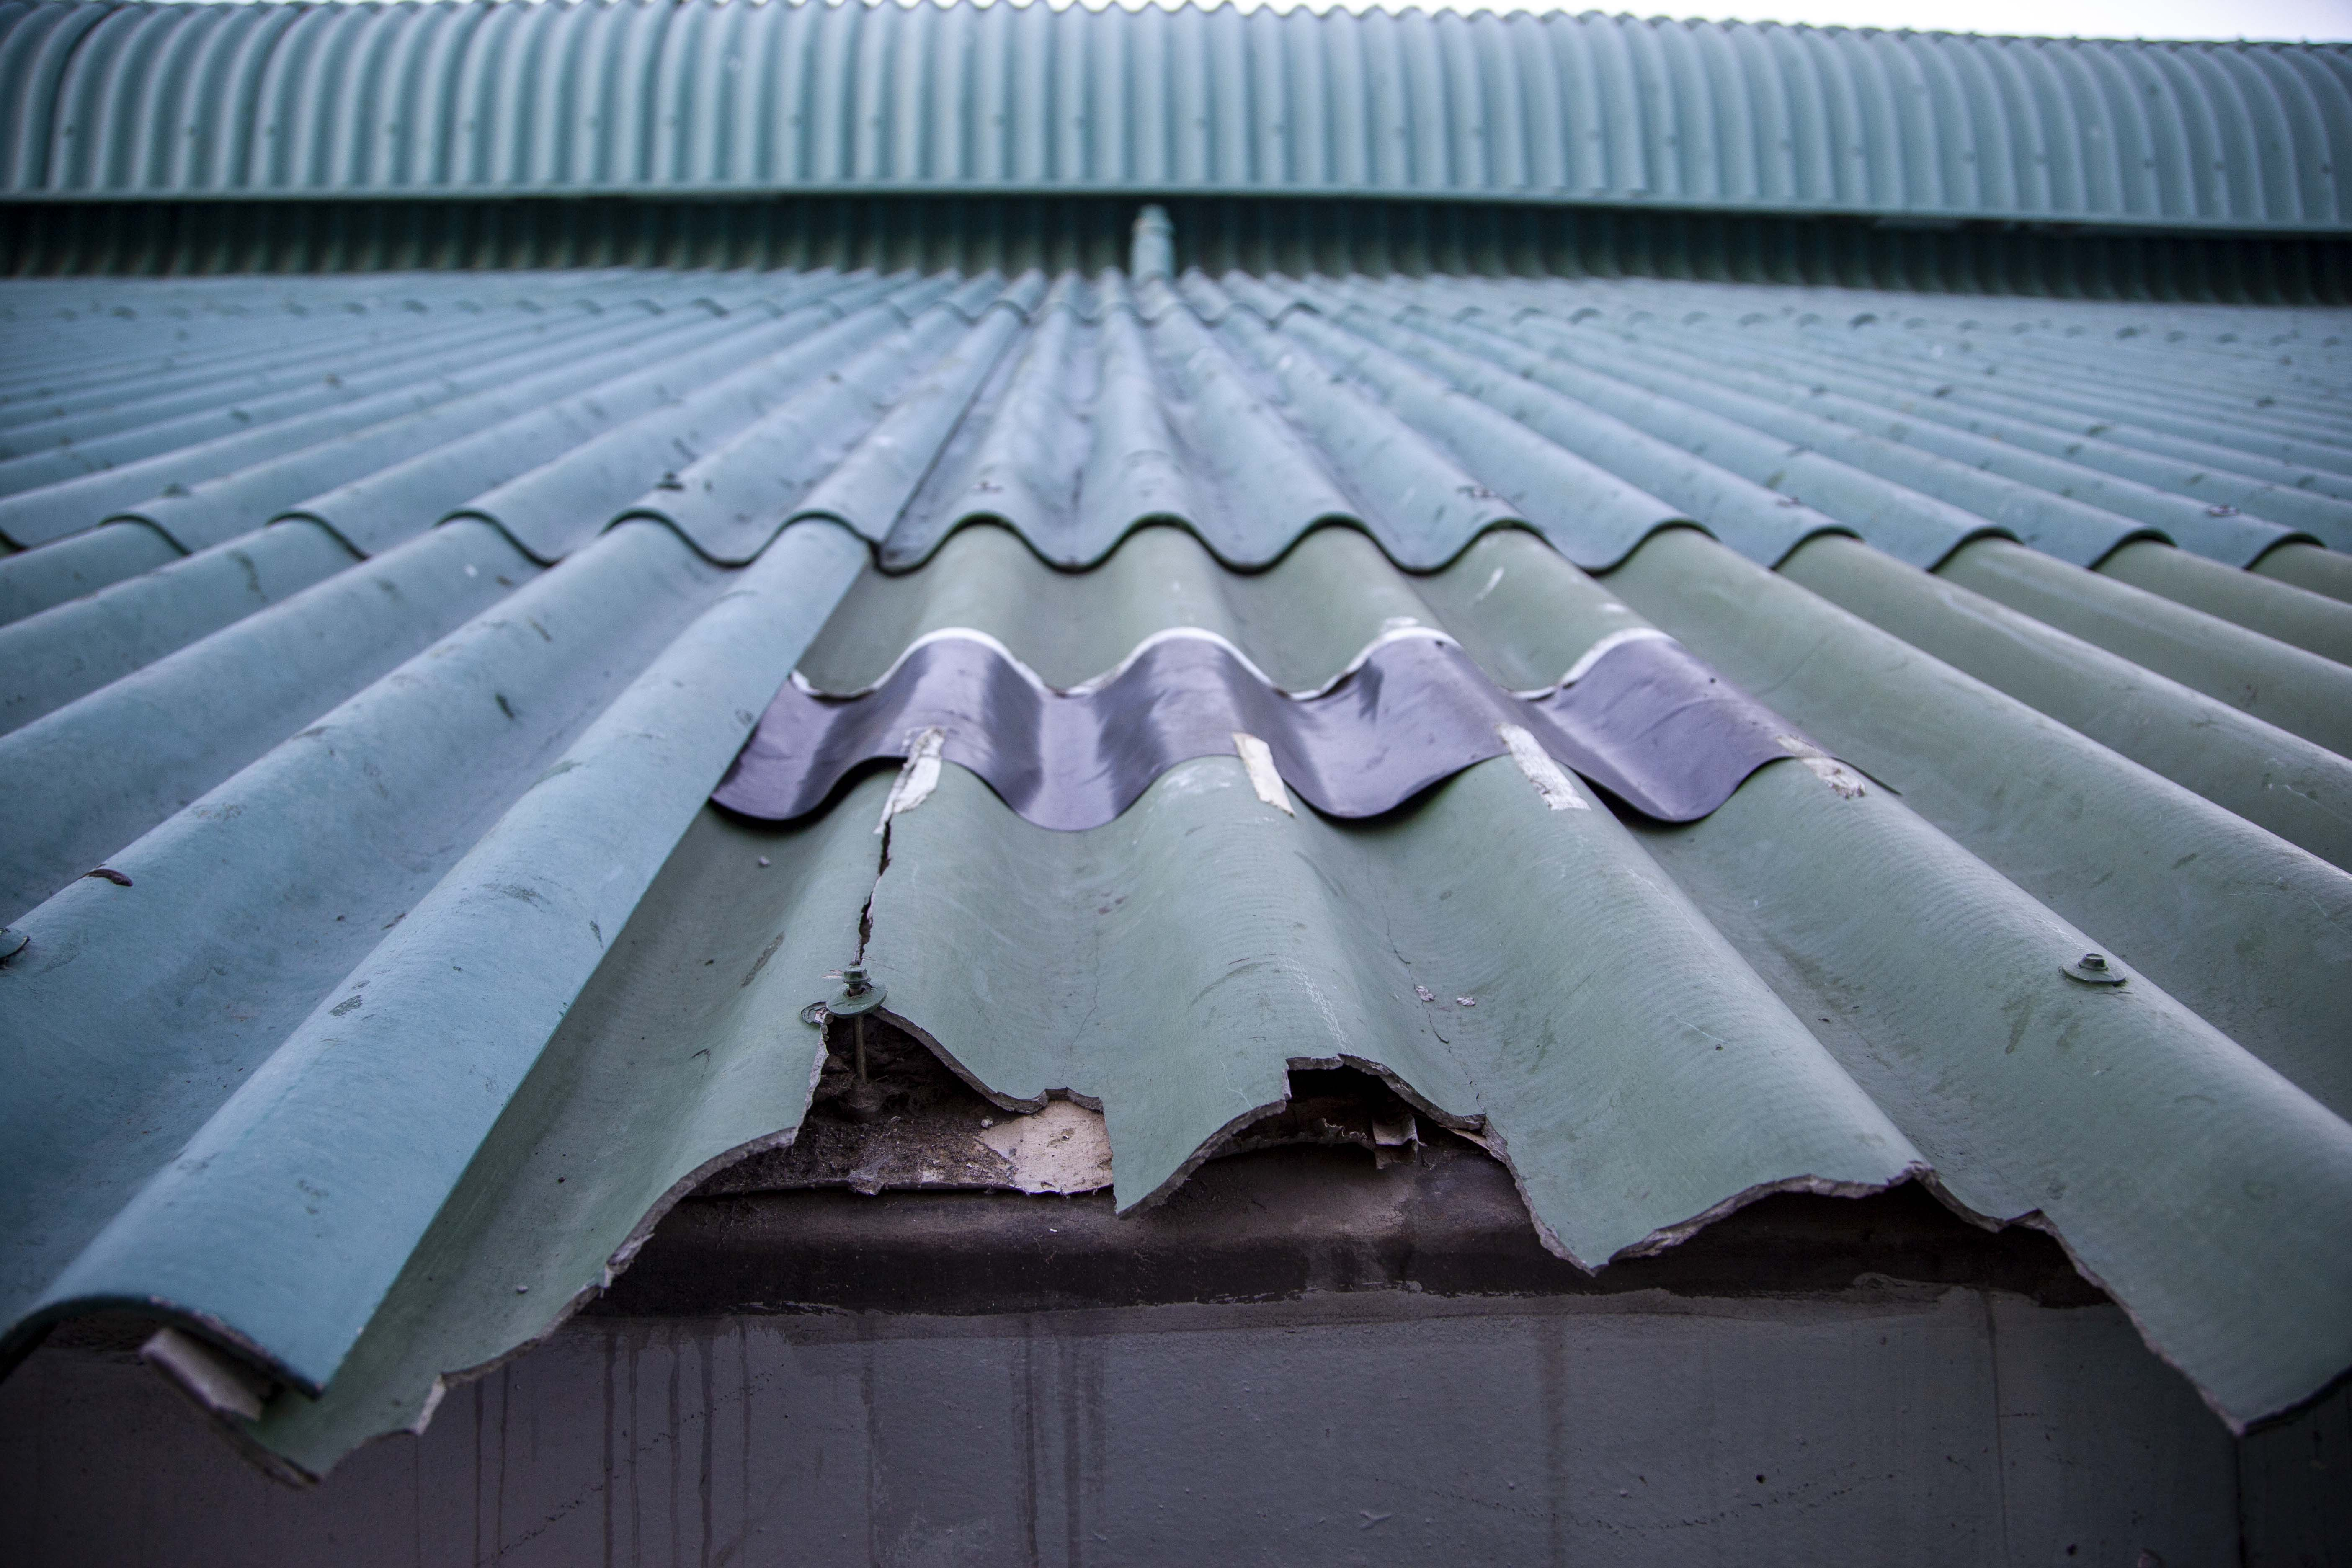 Asbestos roofs need replacing when signs of deterioration are evident